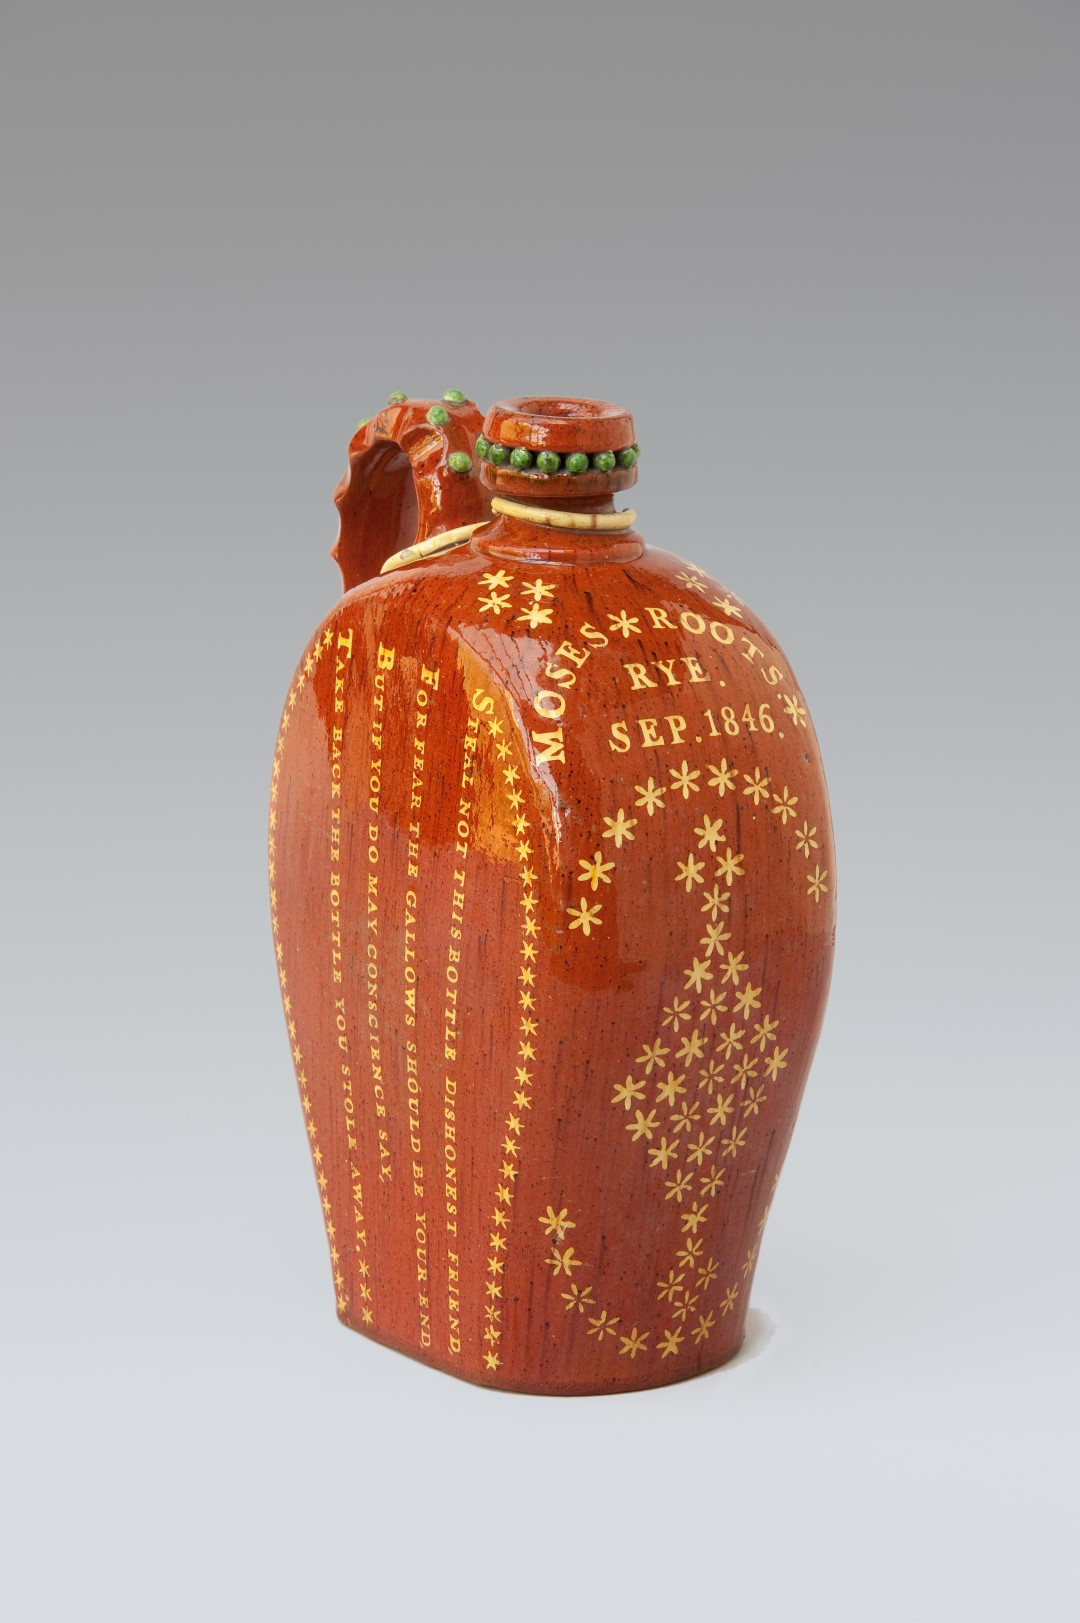 Image of Sussex Pottery <br>Rye Flagon inscribed  'Moses Roots Sept 1846'